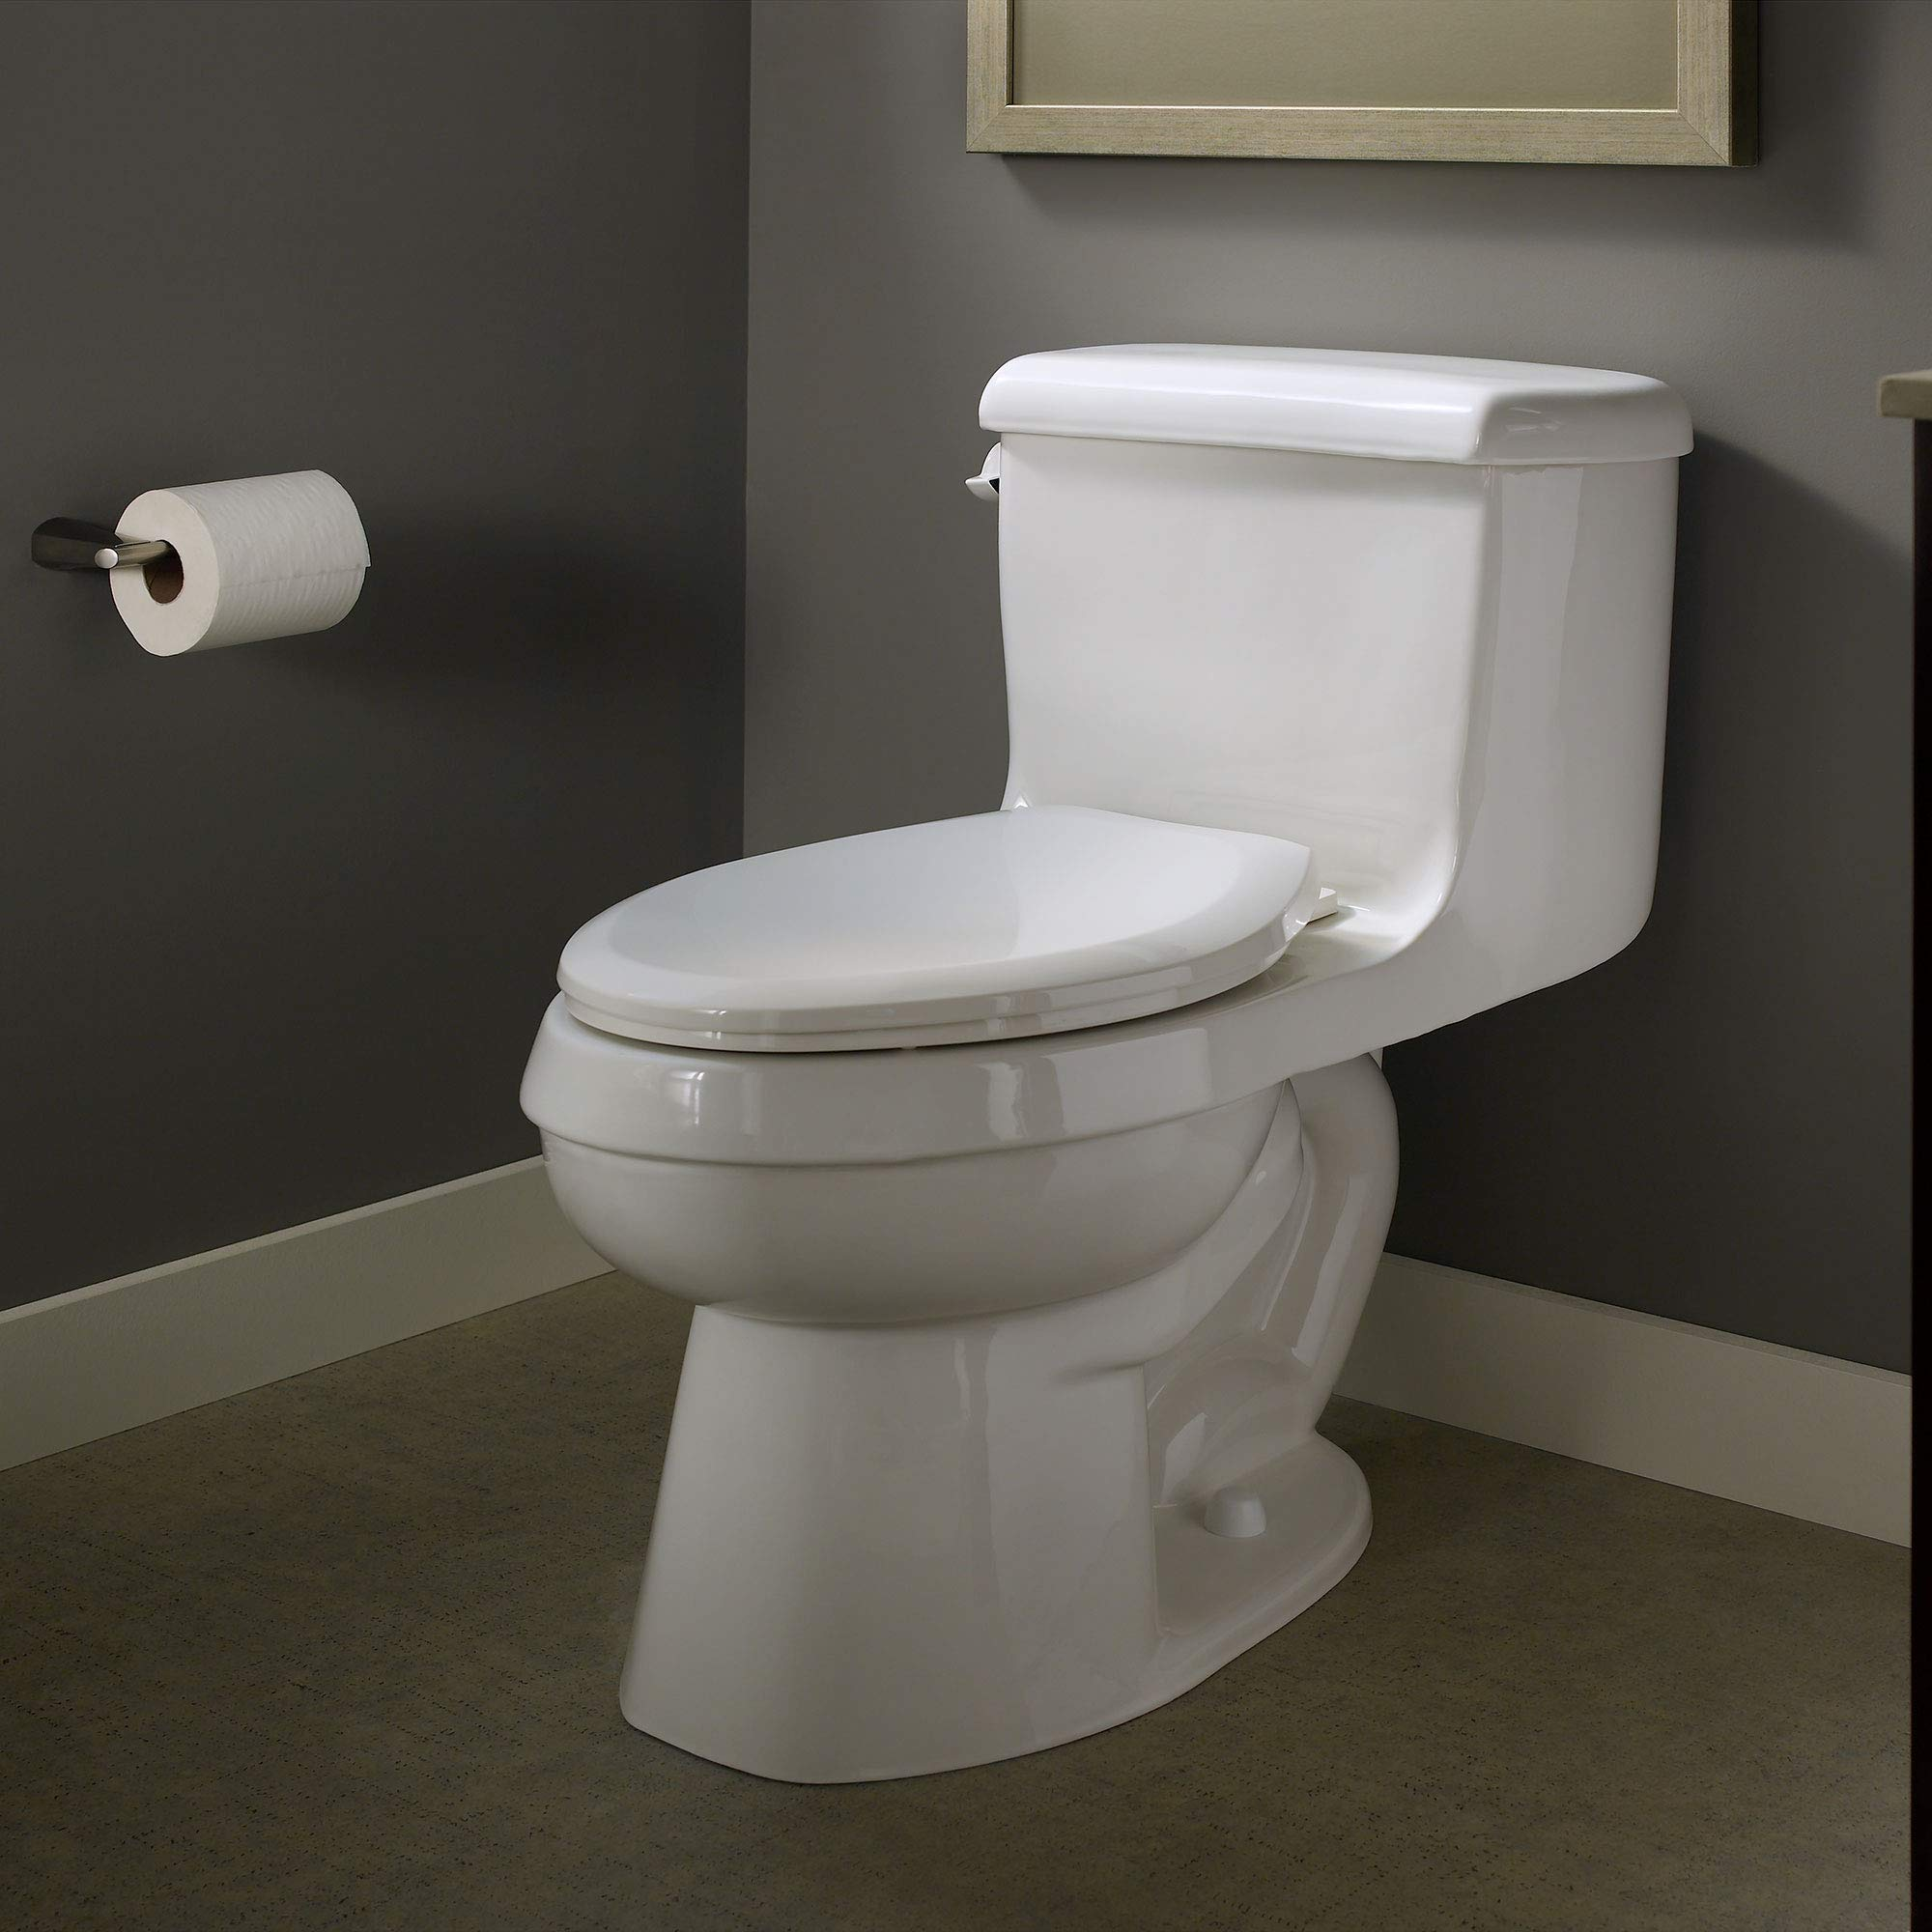 American Standard 5321A65CT.020 Champion Slow-Close Elongated Toilet Seat, White by American Standard (Image #2)